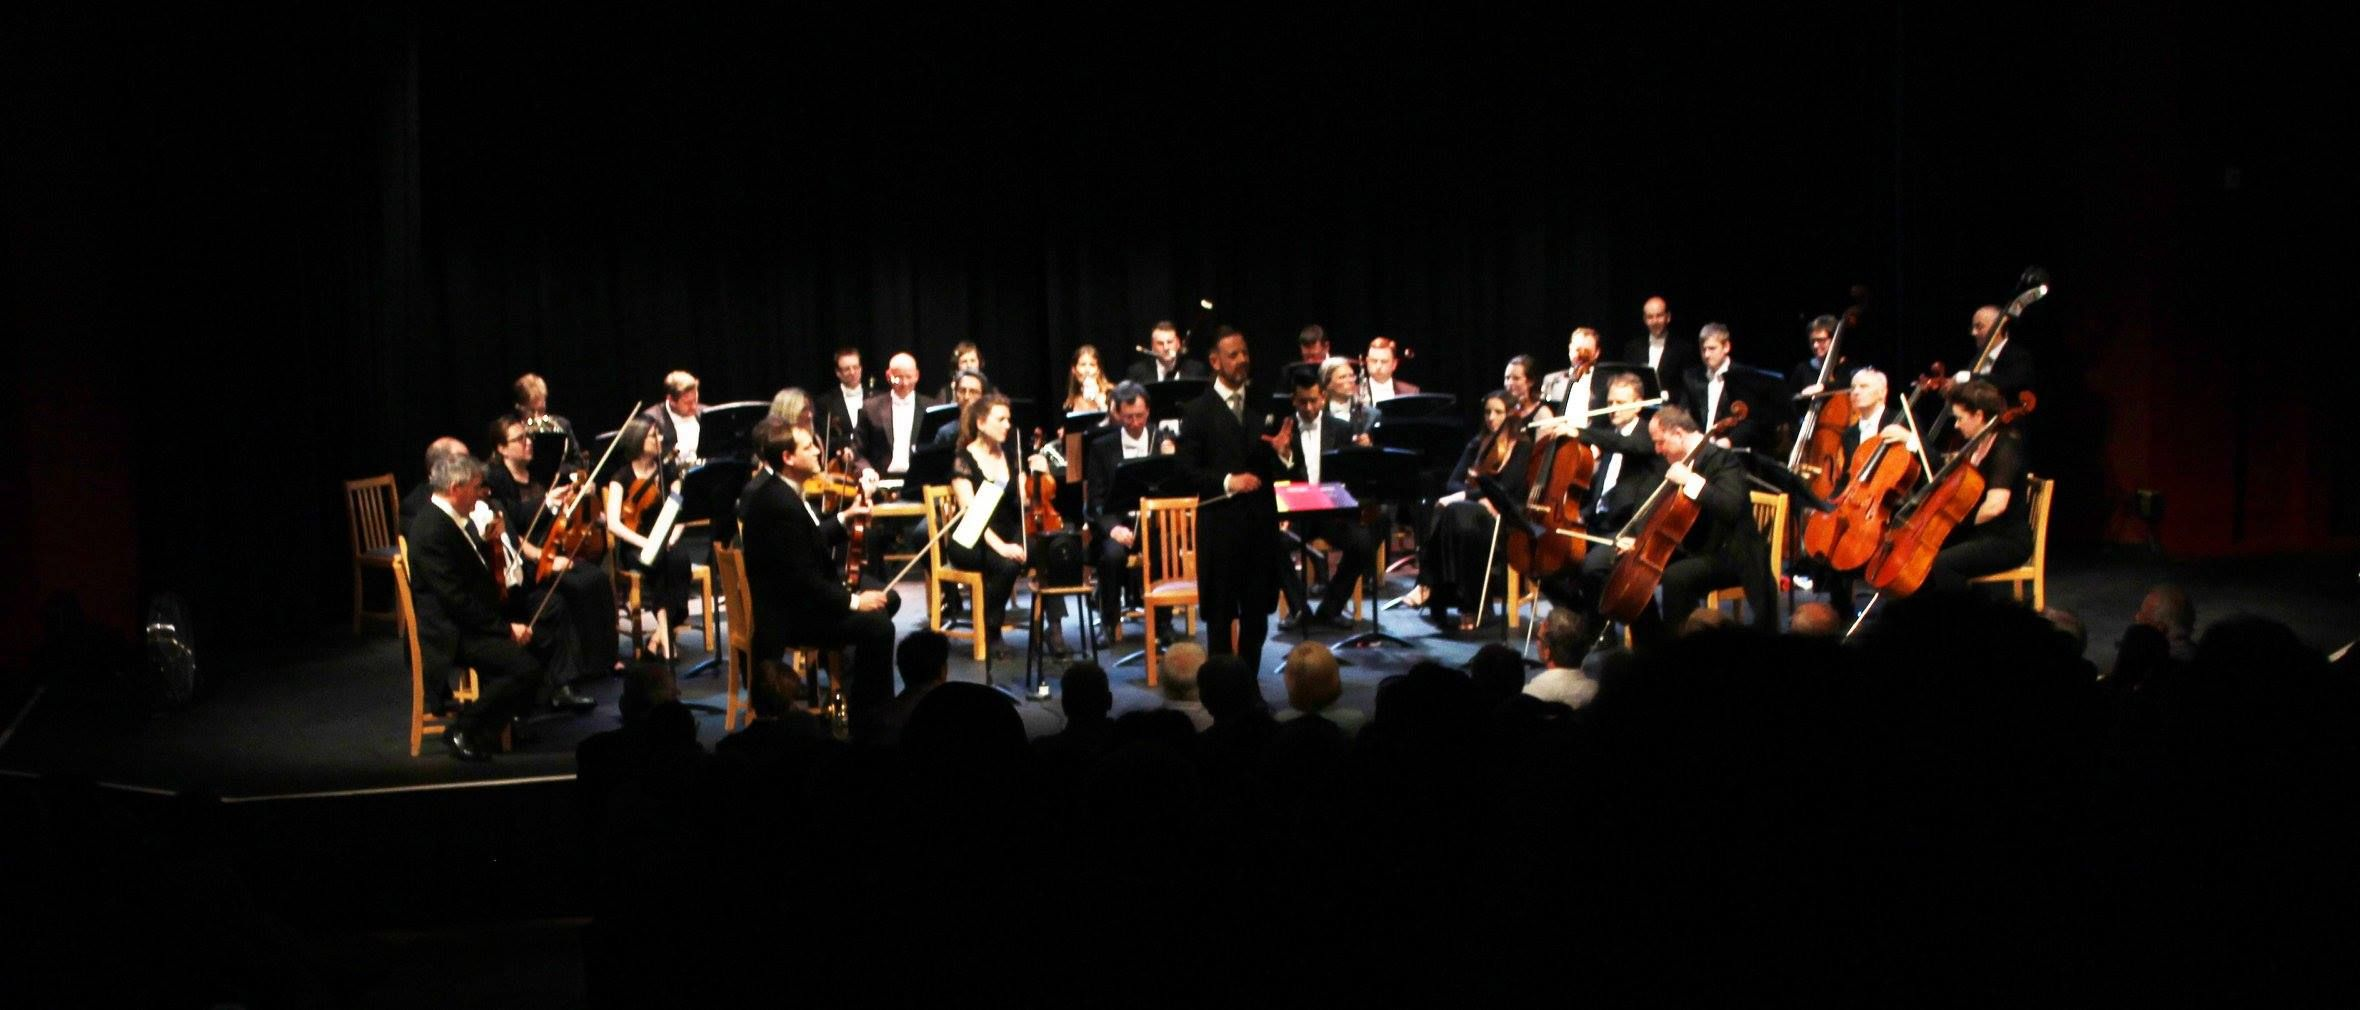 The Southern Sinfonia hits the heights at concert at Queen's College in Taunton